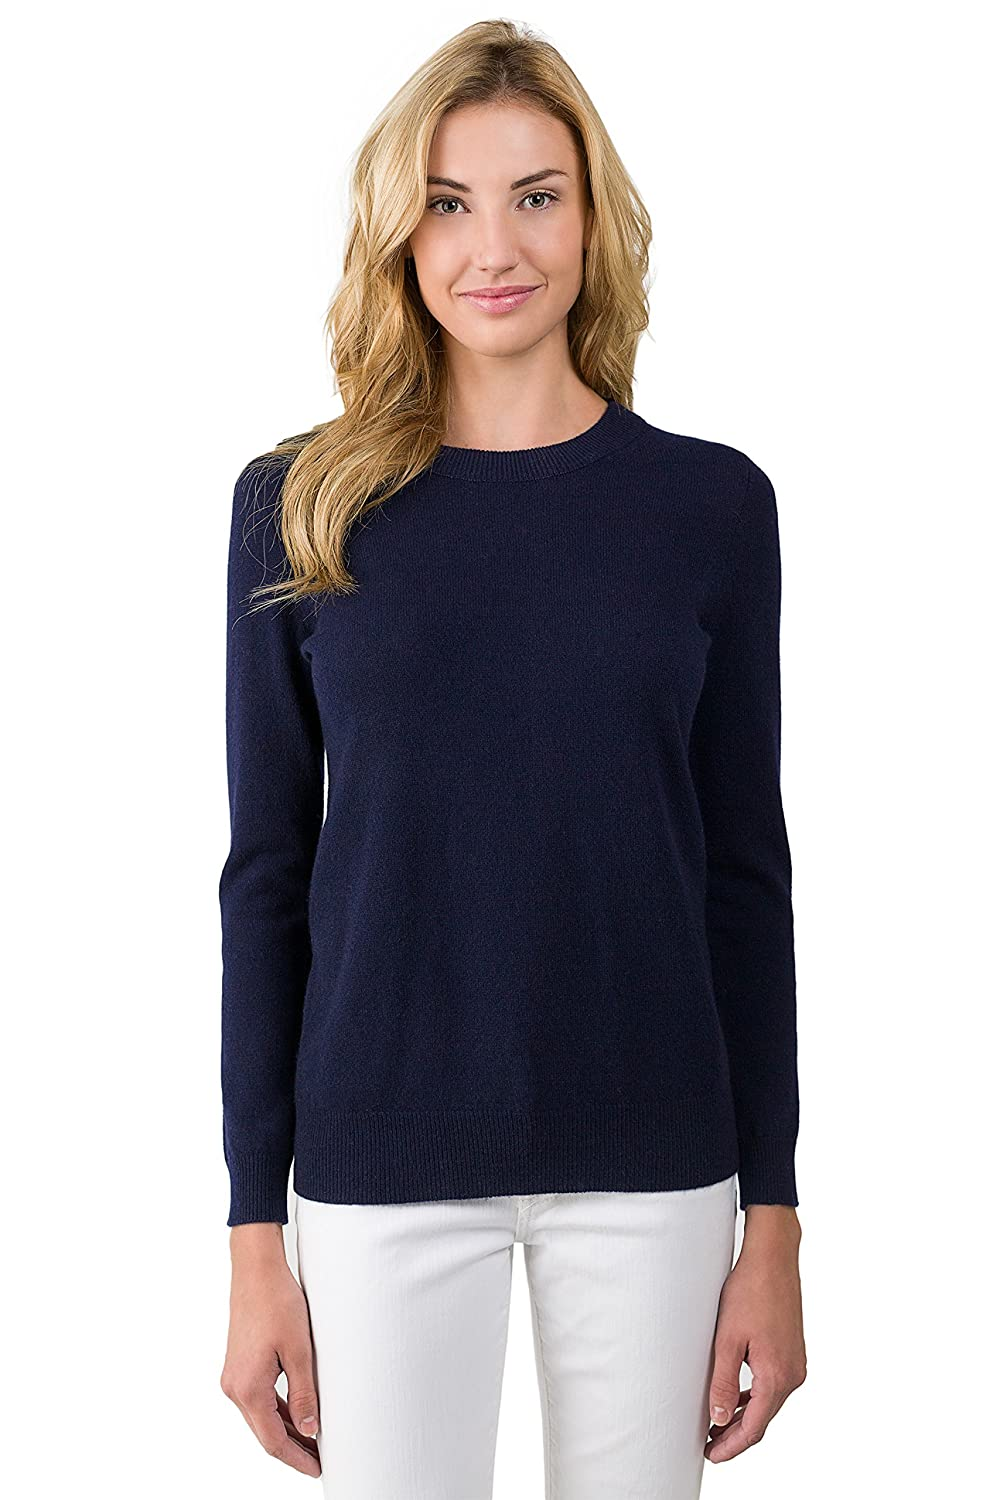 JENNIE LIU Women's 100% Pure Cashmere Long Sleeve Crew Neck ...